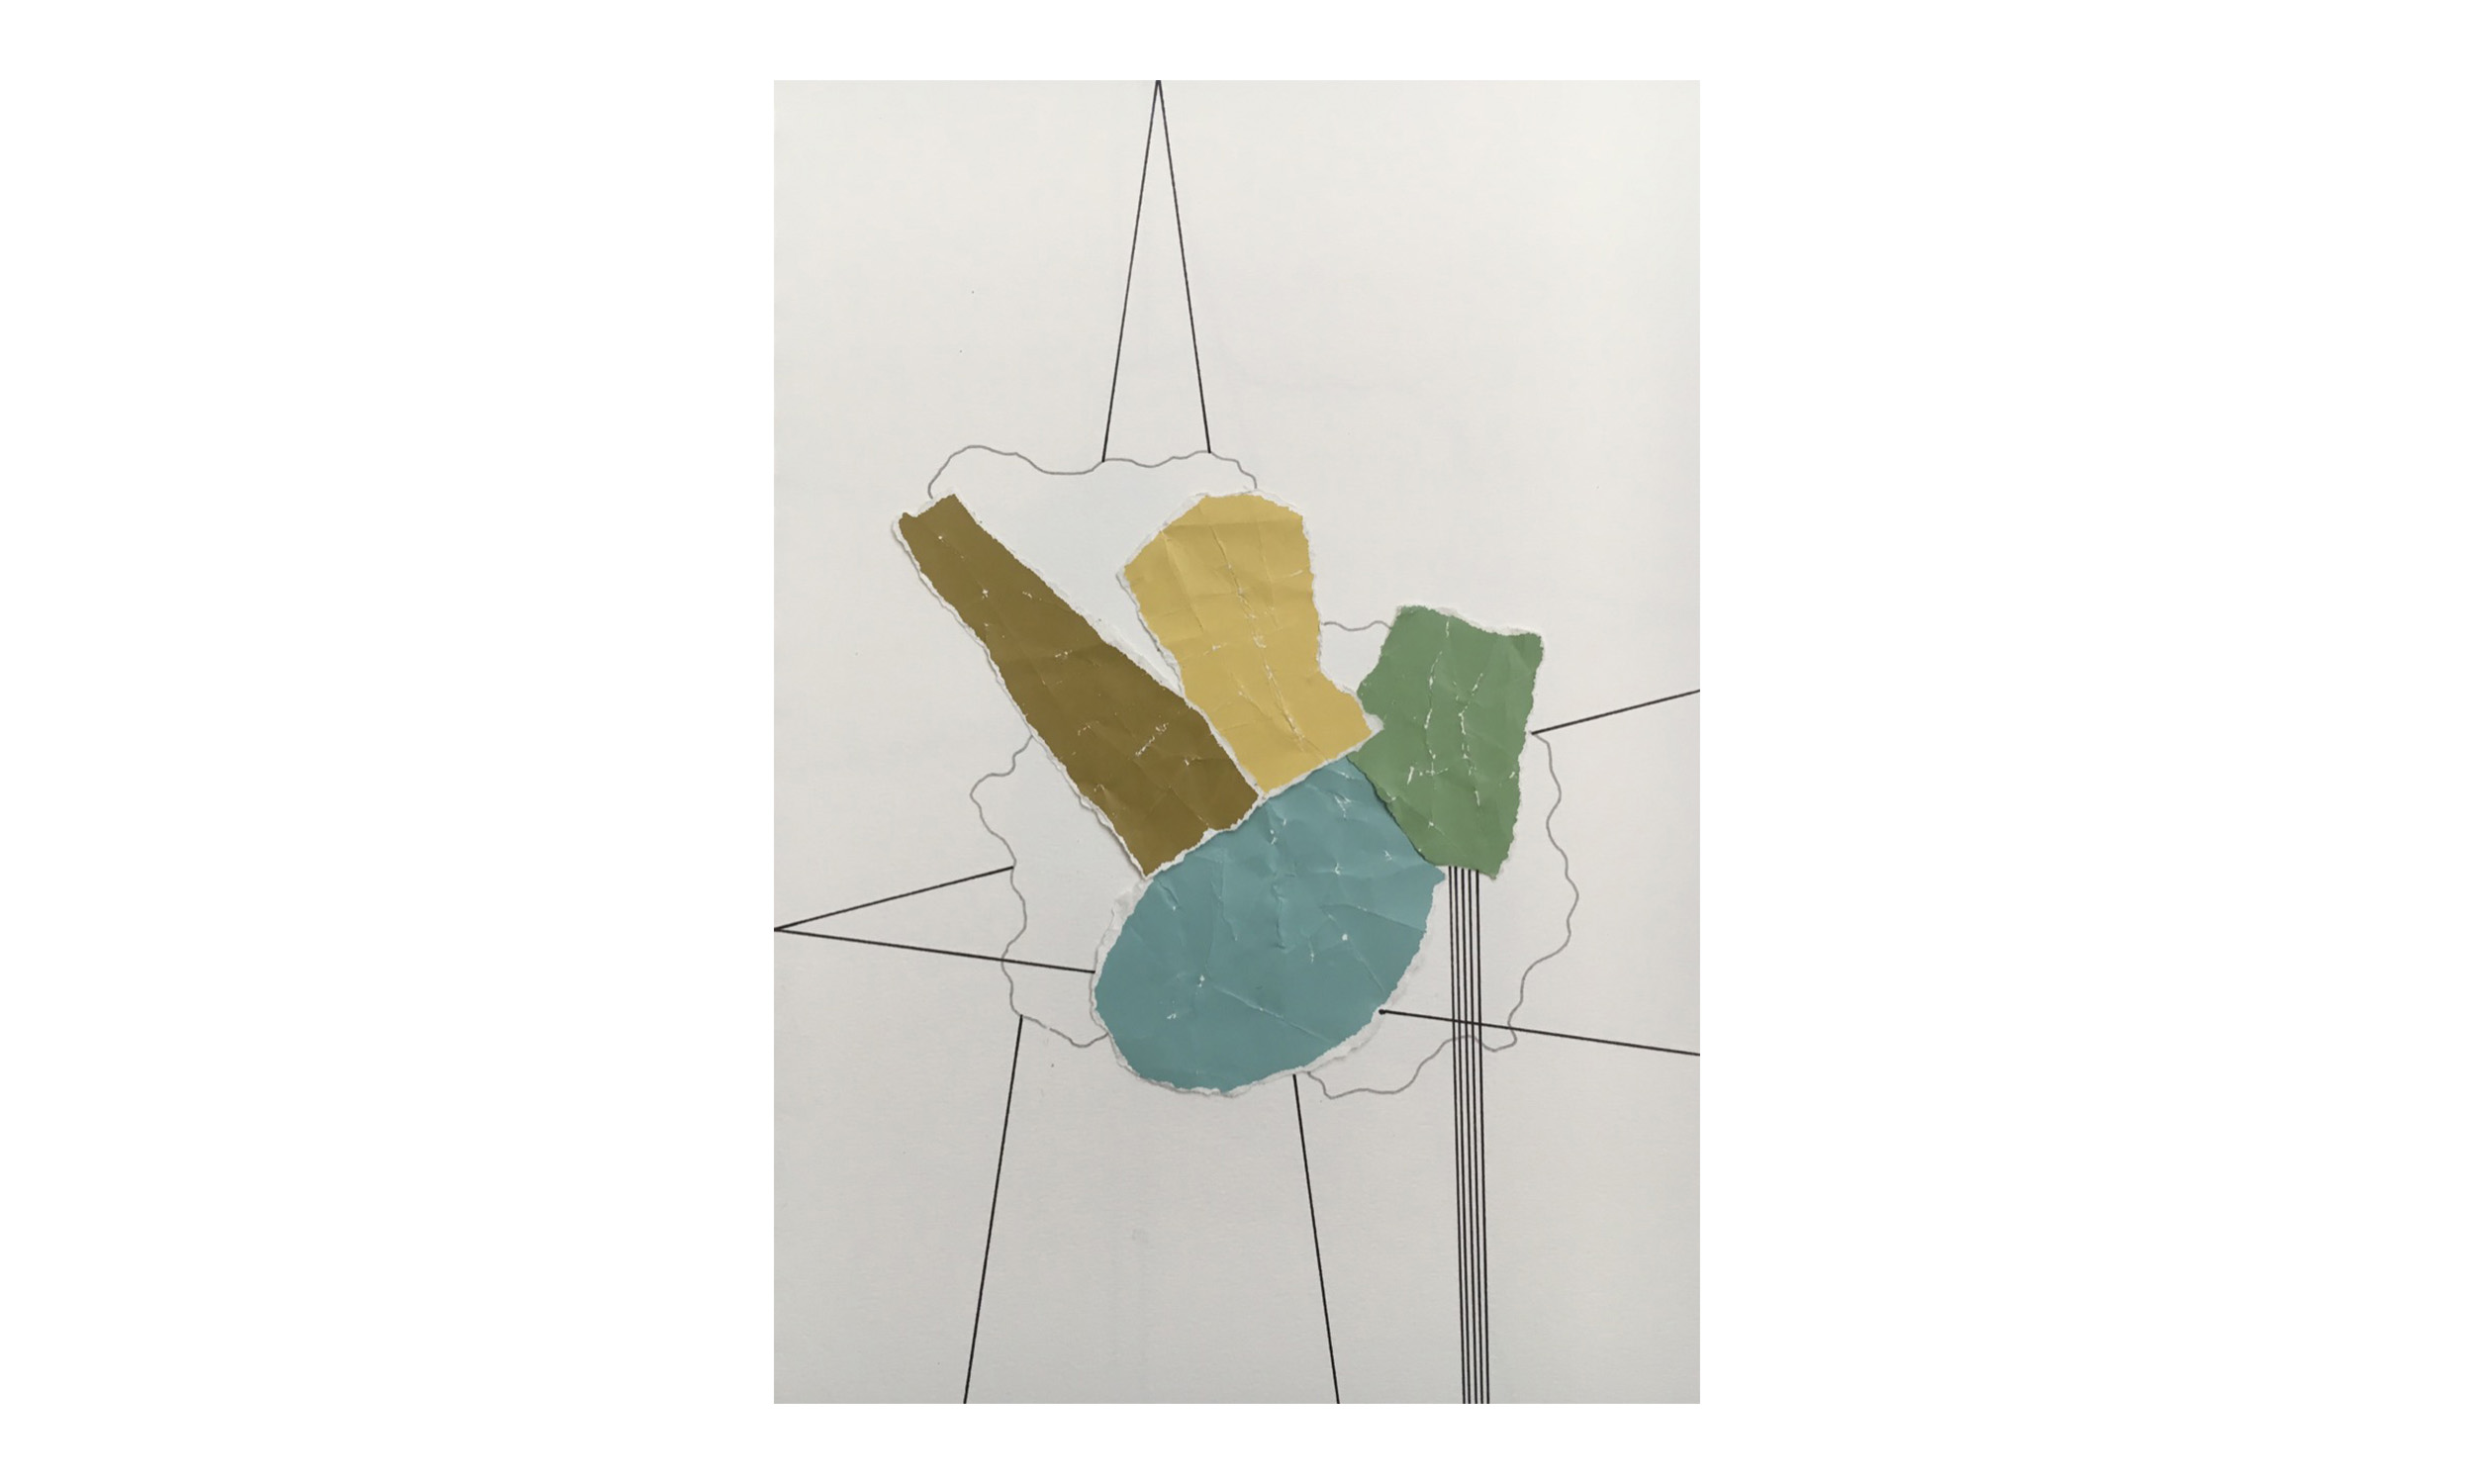 Imaginary Maps 6,  paint chips on paper, pen, pencil, 9 x 12 inches, unframed, $200    Contact us for purchase